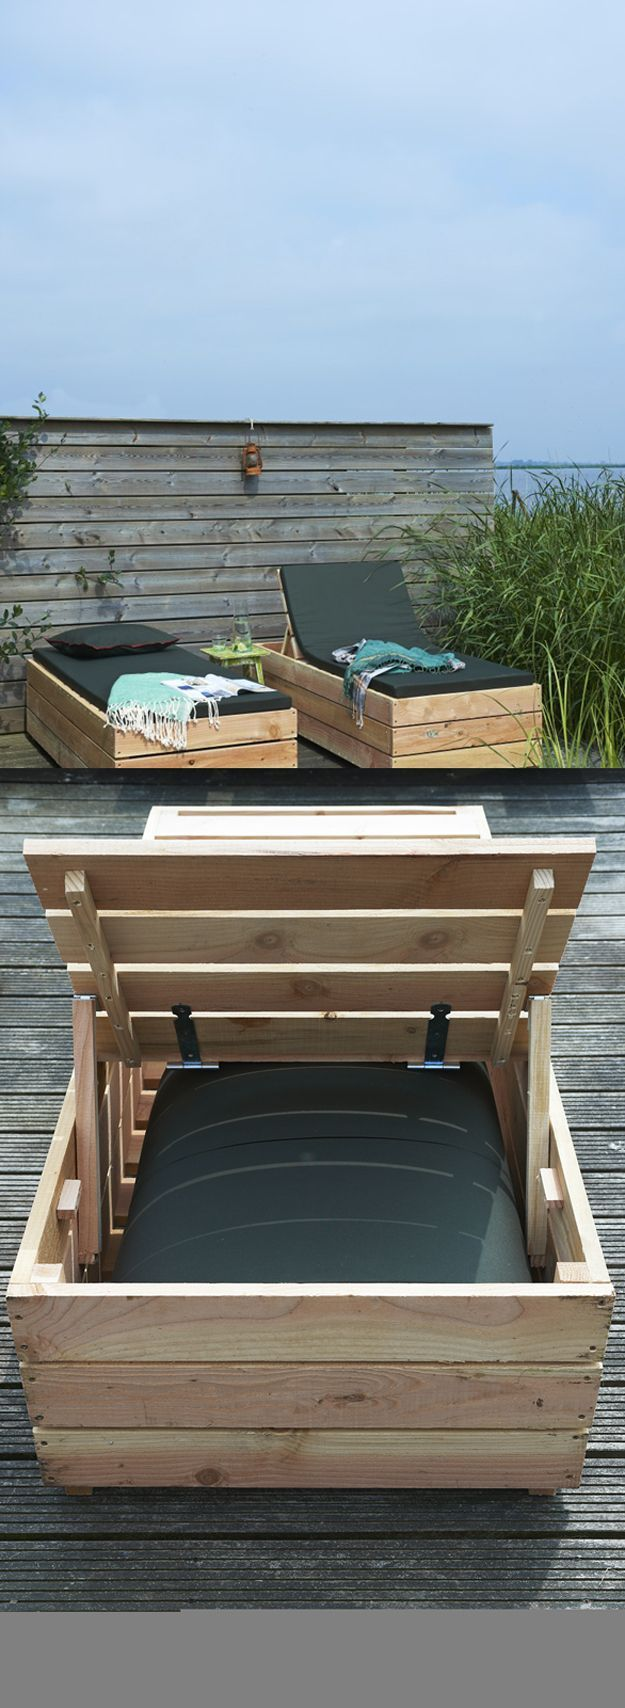 DIY Daybed Lounger | Cool Step By Step DIY Pallet Furniture Tutorial by DIY Ready at http://diyready.com/diy-pallet-projects-outdoor-furniture/